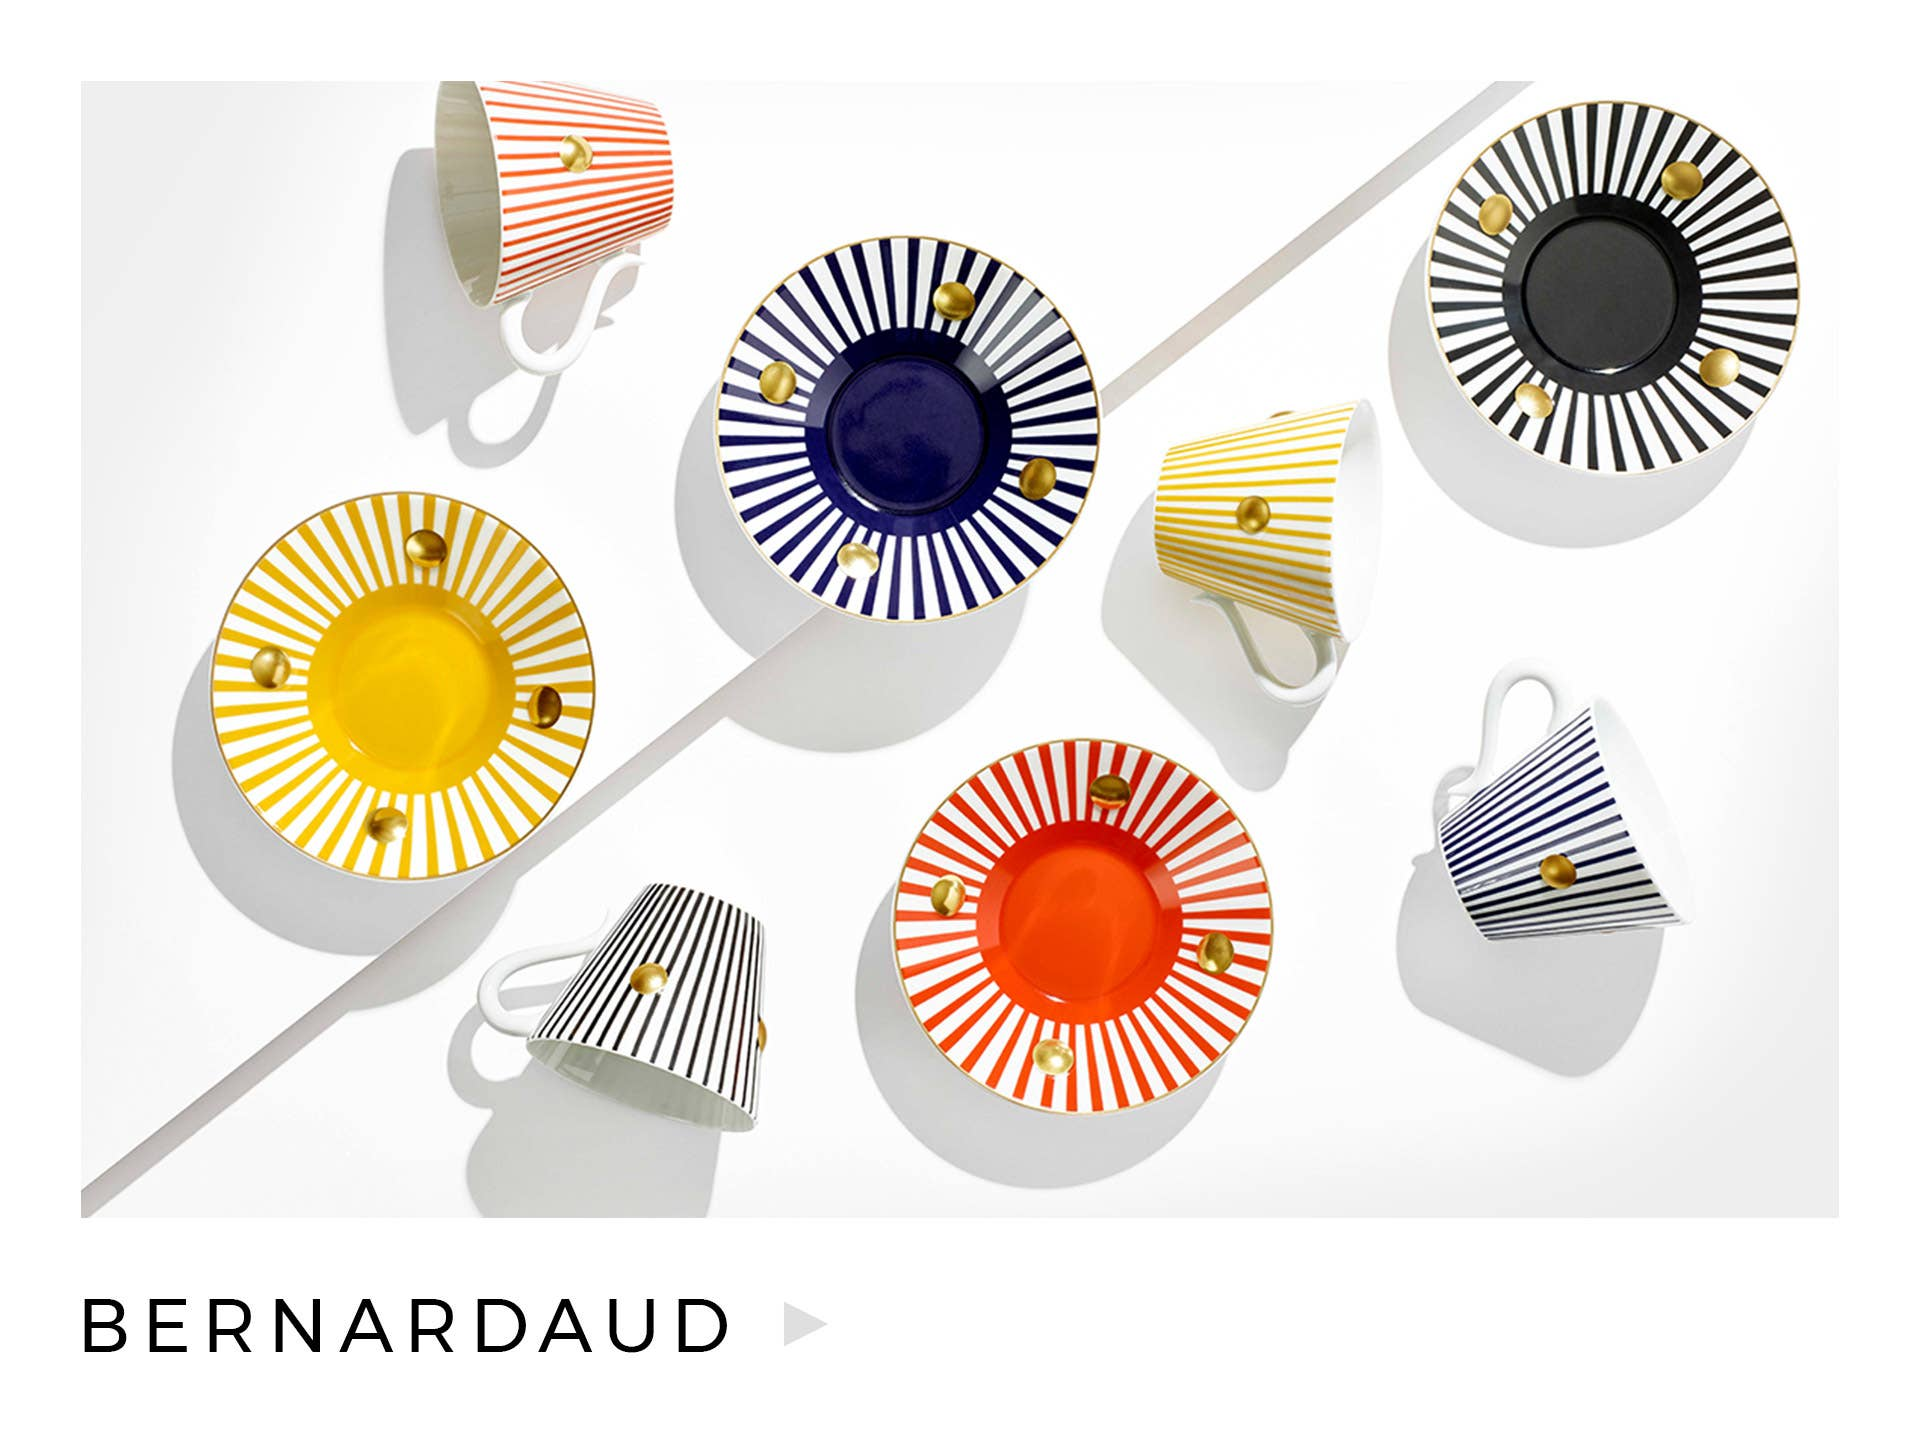 Learn more about our beautiful Bernardaud collection, including our new Delphos cups & saucers.